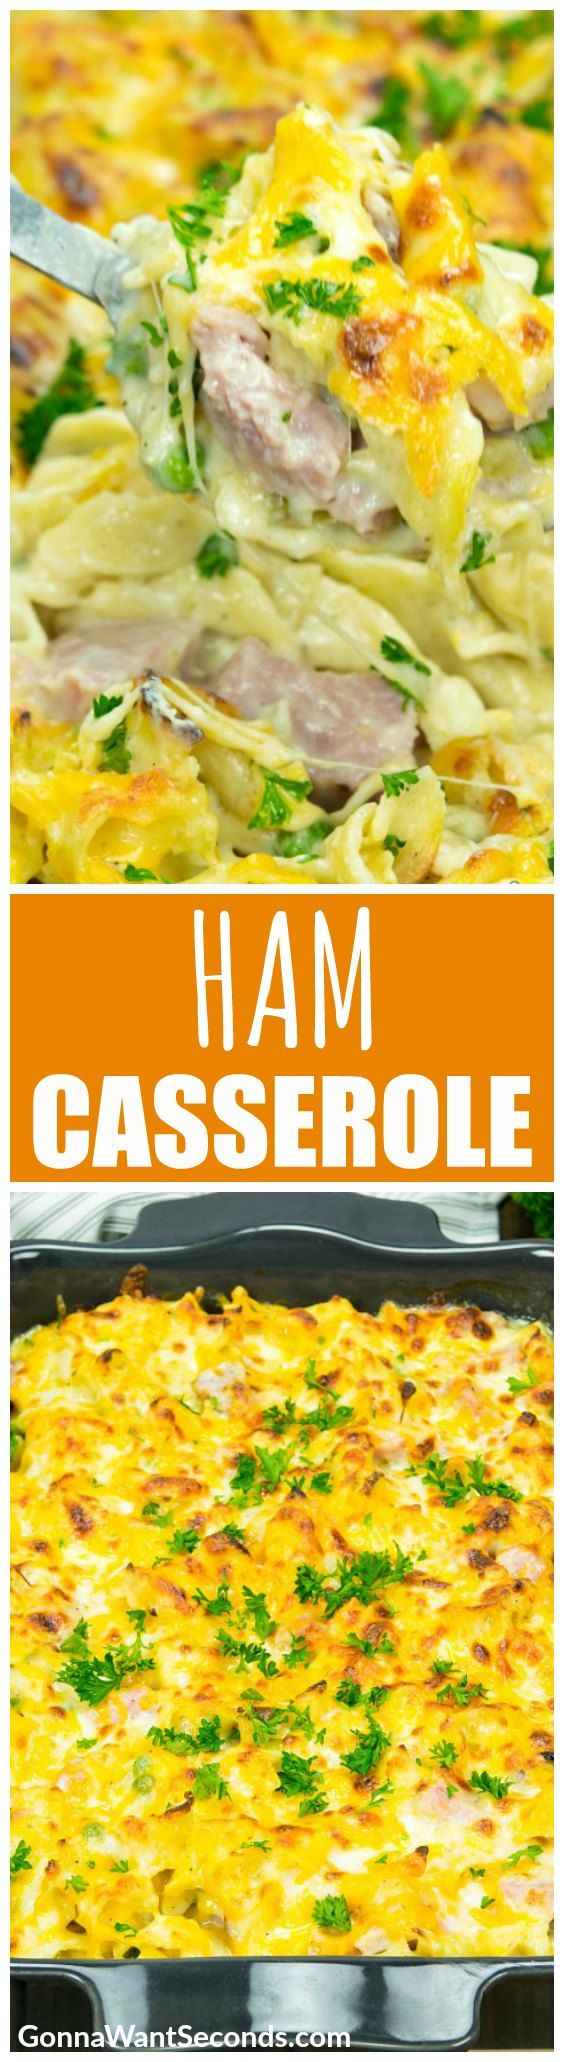 Smoky, salty chunks of ham mingle with curly ribbons of pasta in a decadent cream sauce, loaded with cheese and all the tummy-tempting love of a homemade meal. You won't find any green eggs here, but you'll want to eat this hearty Ham Casserole everywhere!